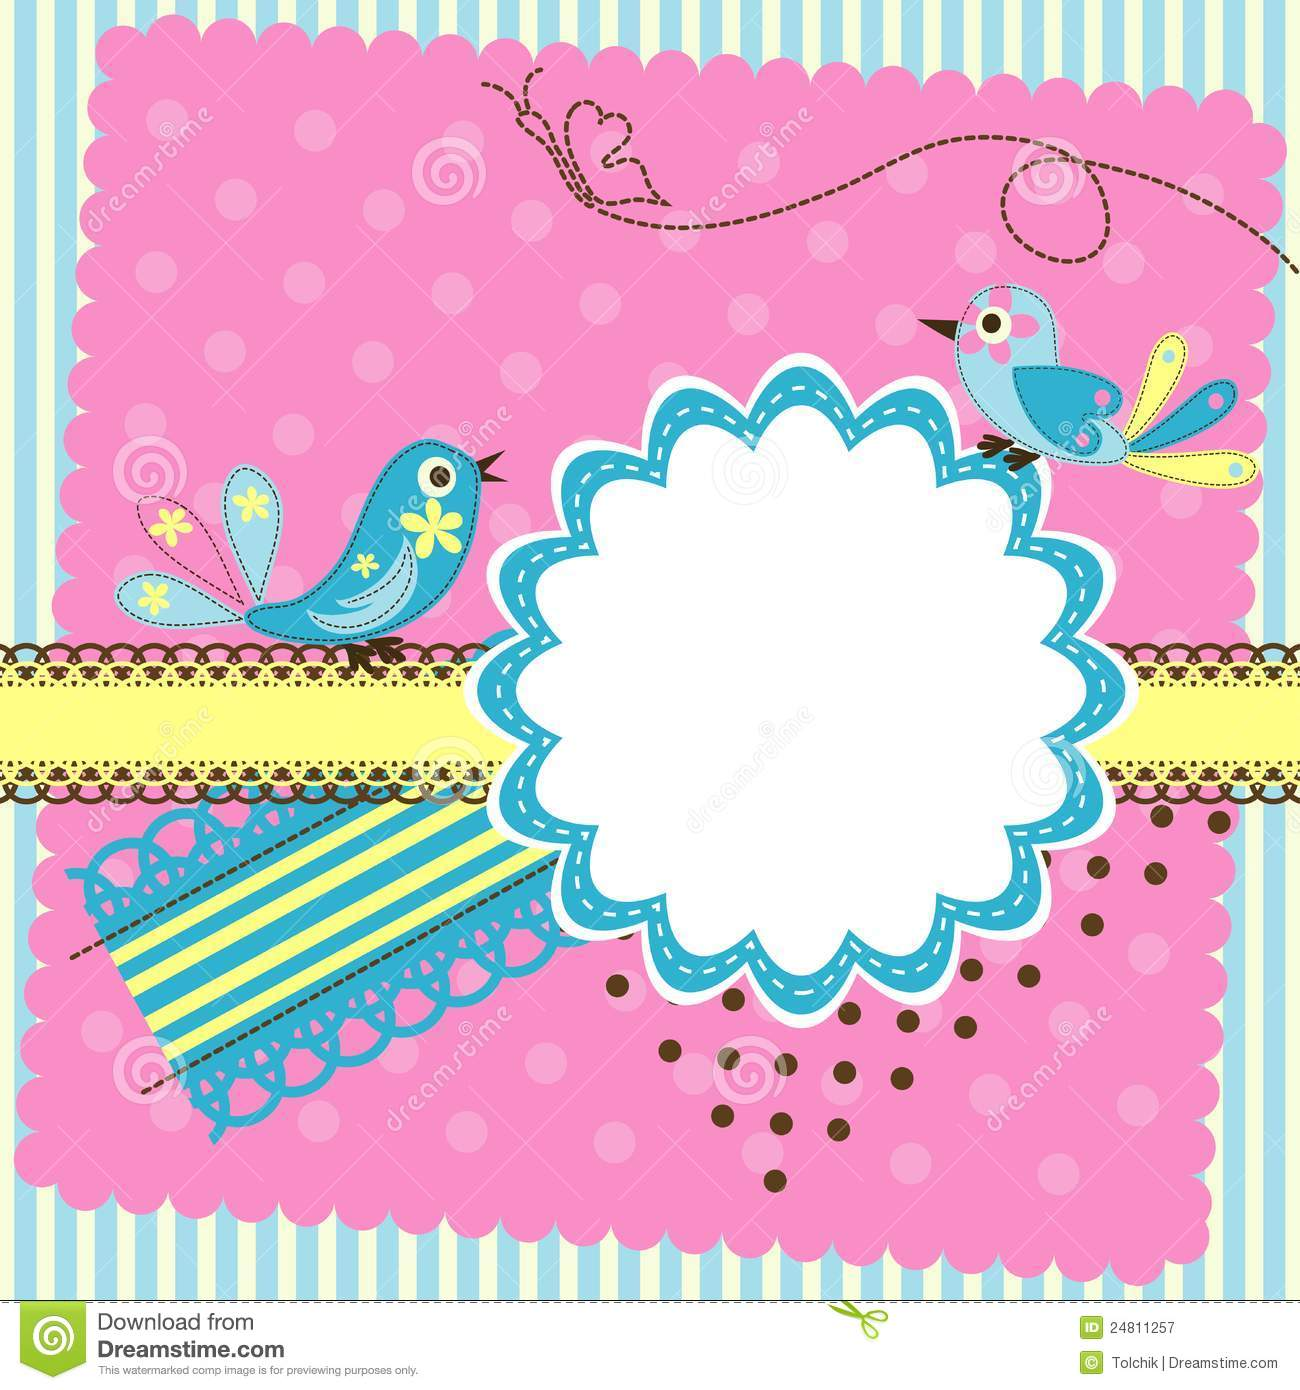 birthday card design template ; template-greeting-card-blue-birds-design-template-layout-with-pink-decoration-style-pattern-birthday-card-template-free